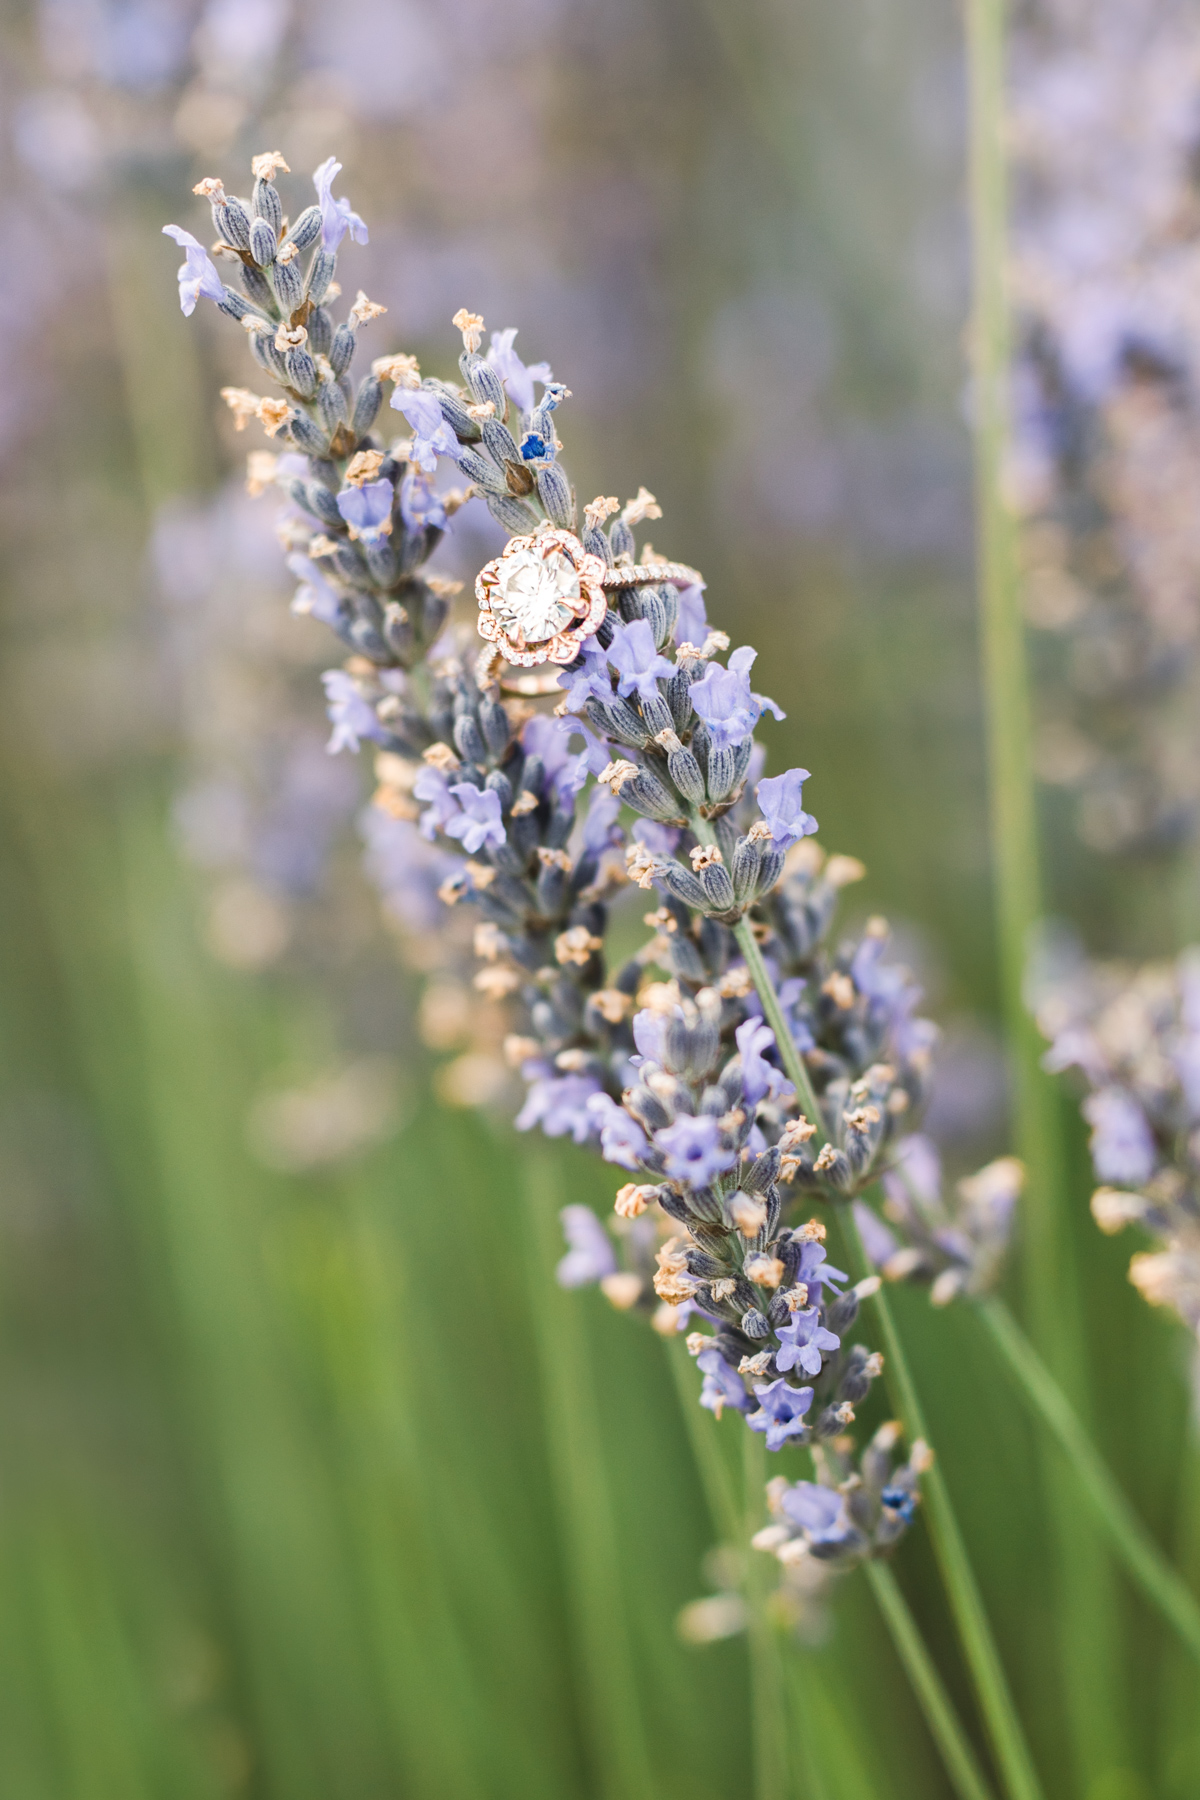 Engagement ring styling ideas on lavender